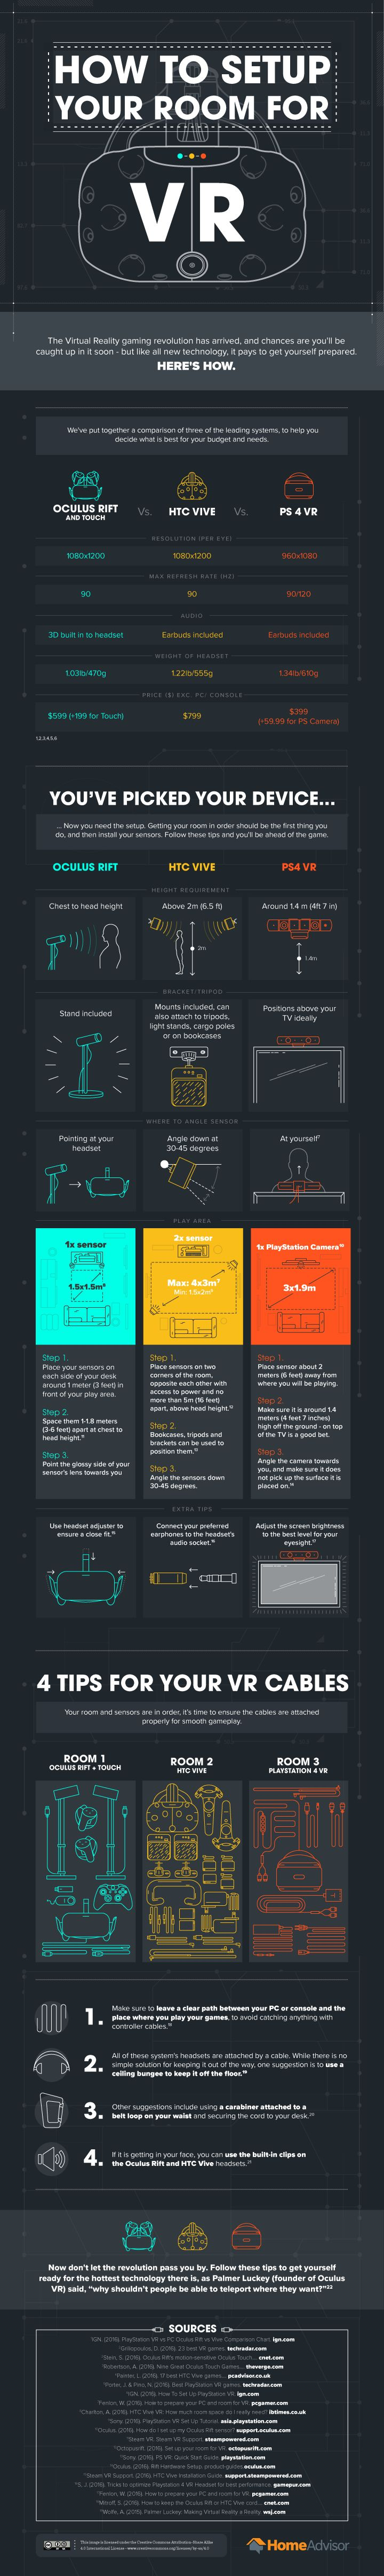 How to Set Up Your Room for VR #Infographic #VirtualReality